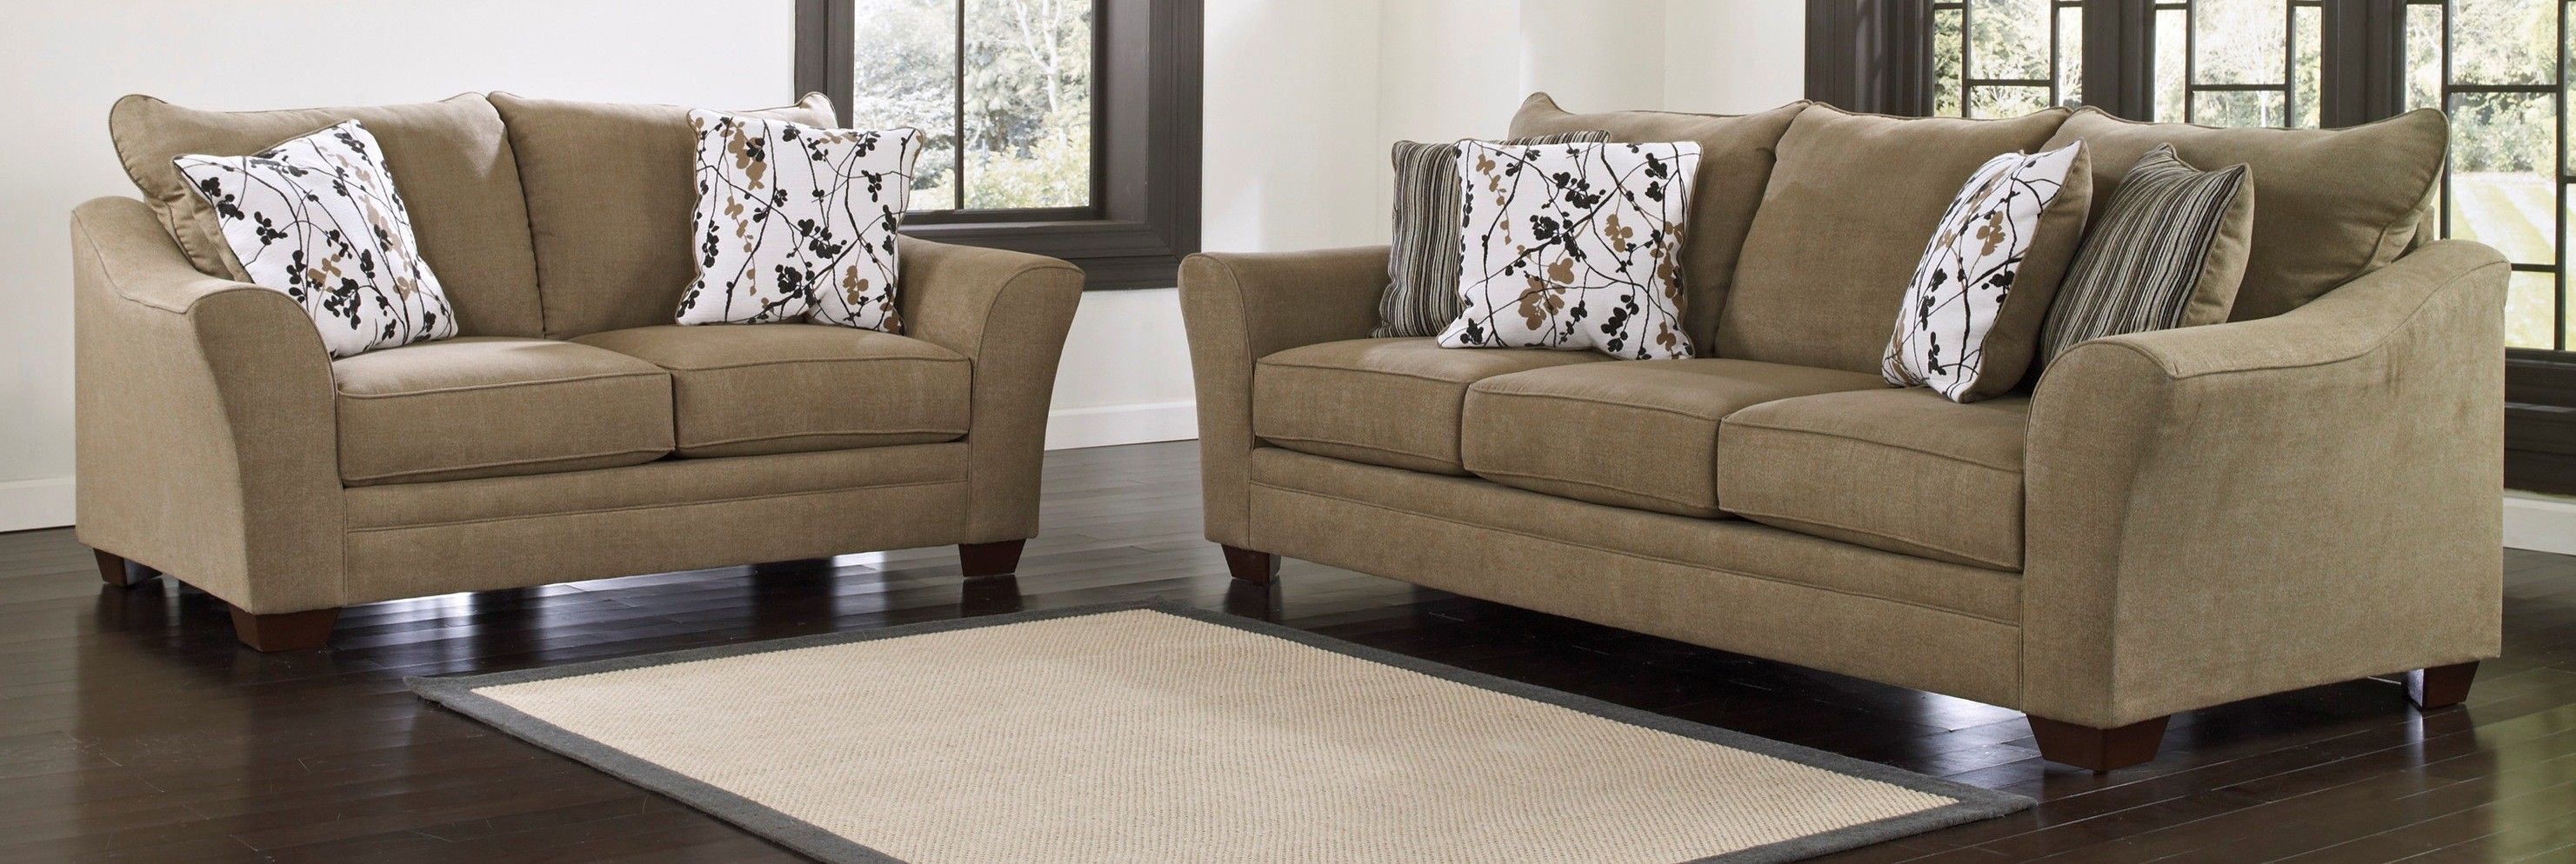 Love These Ashley Furniture Sofas They Re The Perfect Living Room Decor For Such